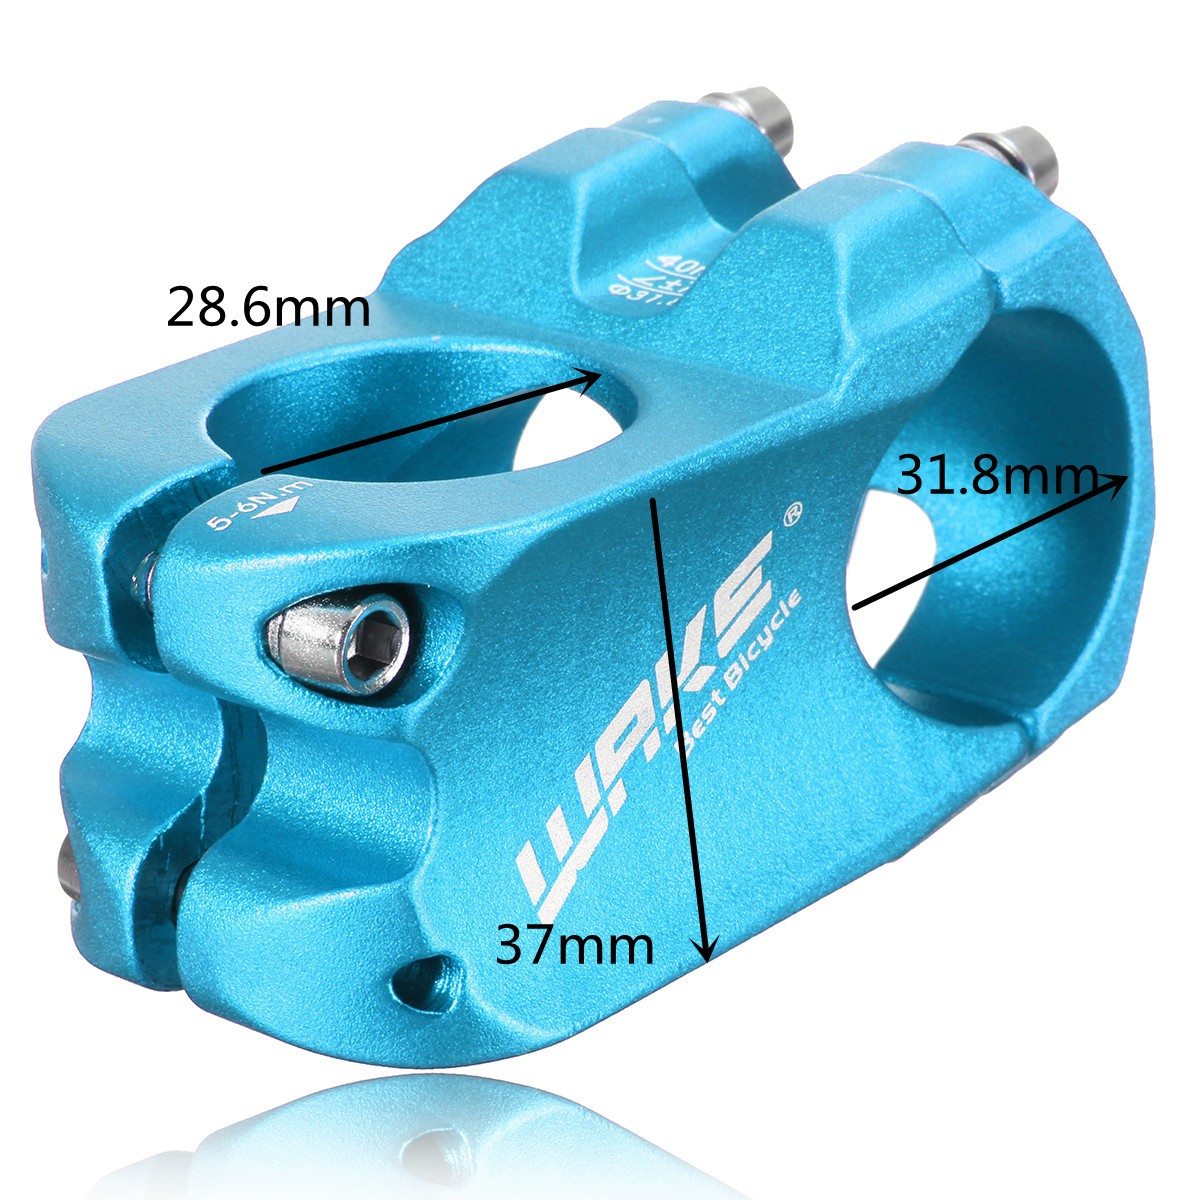 WAKE Cycling Bicycle Aluminum Alloy Road MTB Mountain Bike Handlebar Stem 31.8mm